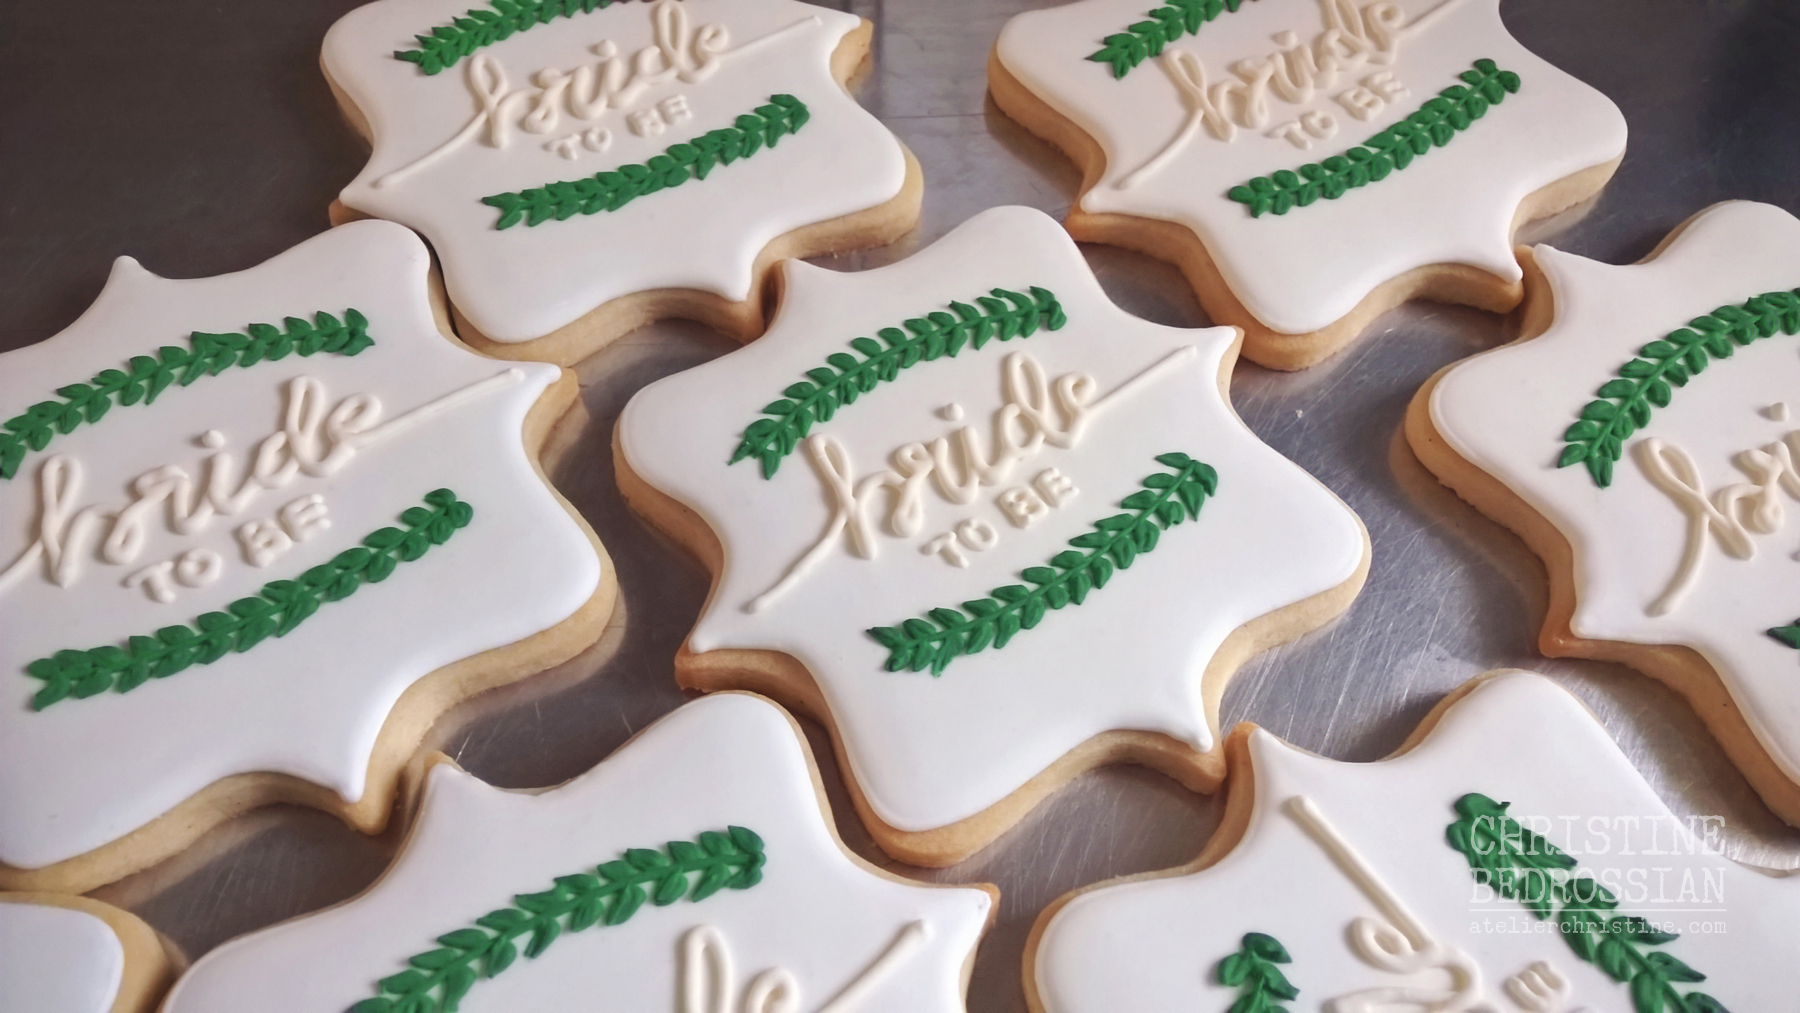 Le Shoppe Greenery Decorated Sugar Cookies For A Winter Bridal